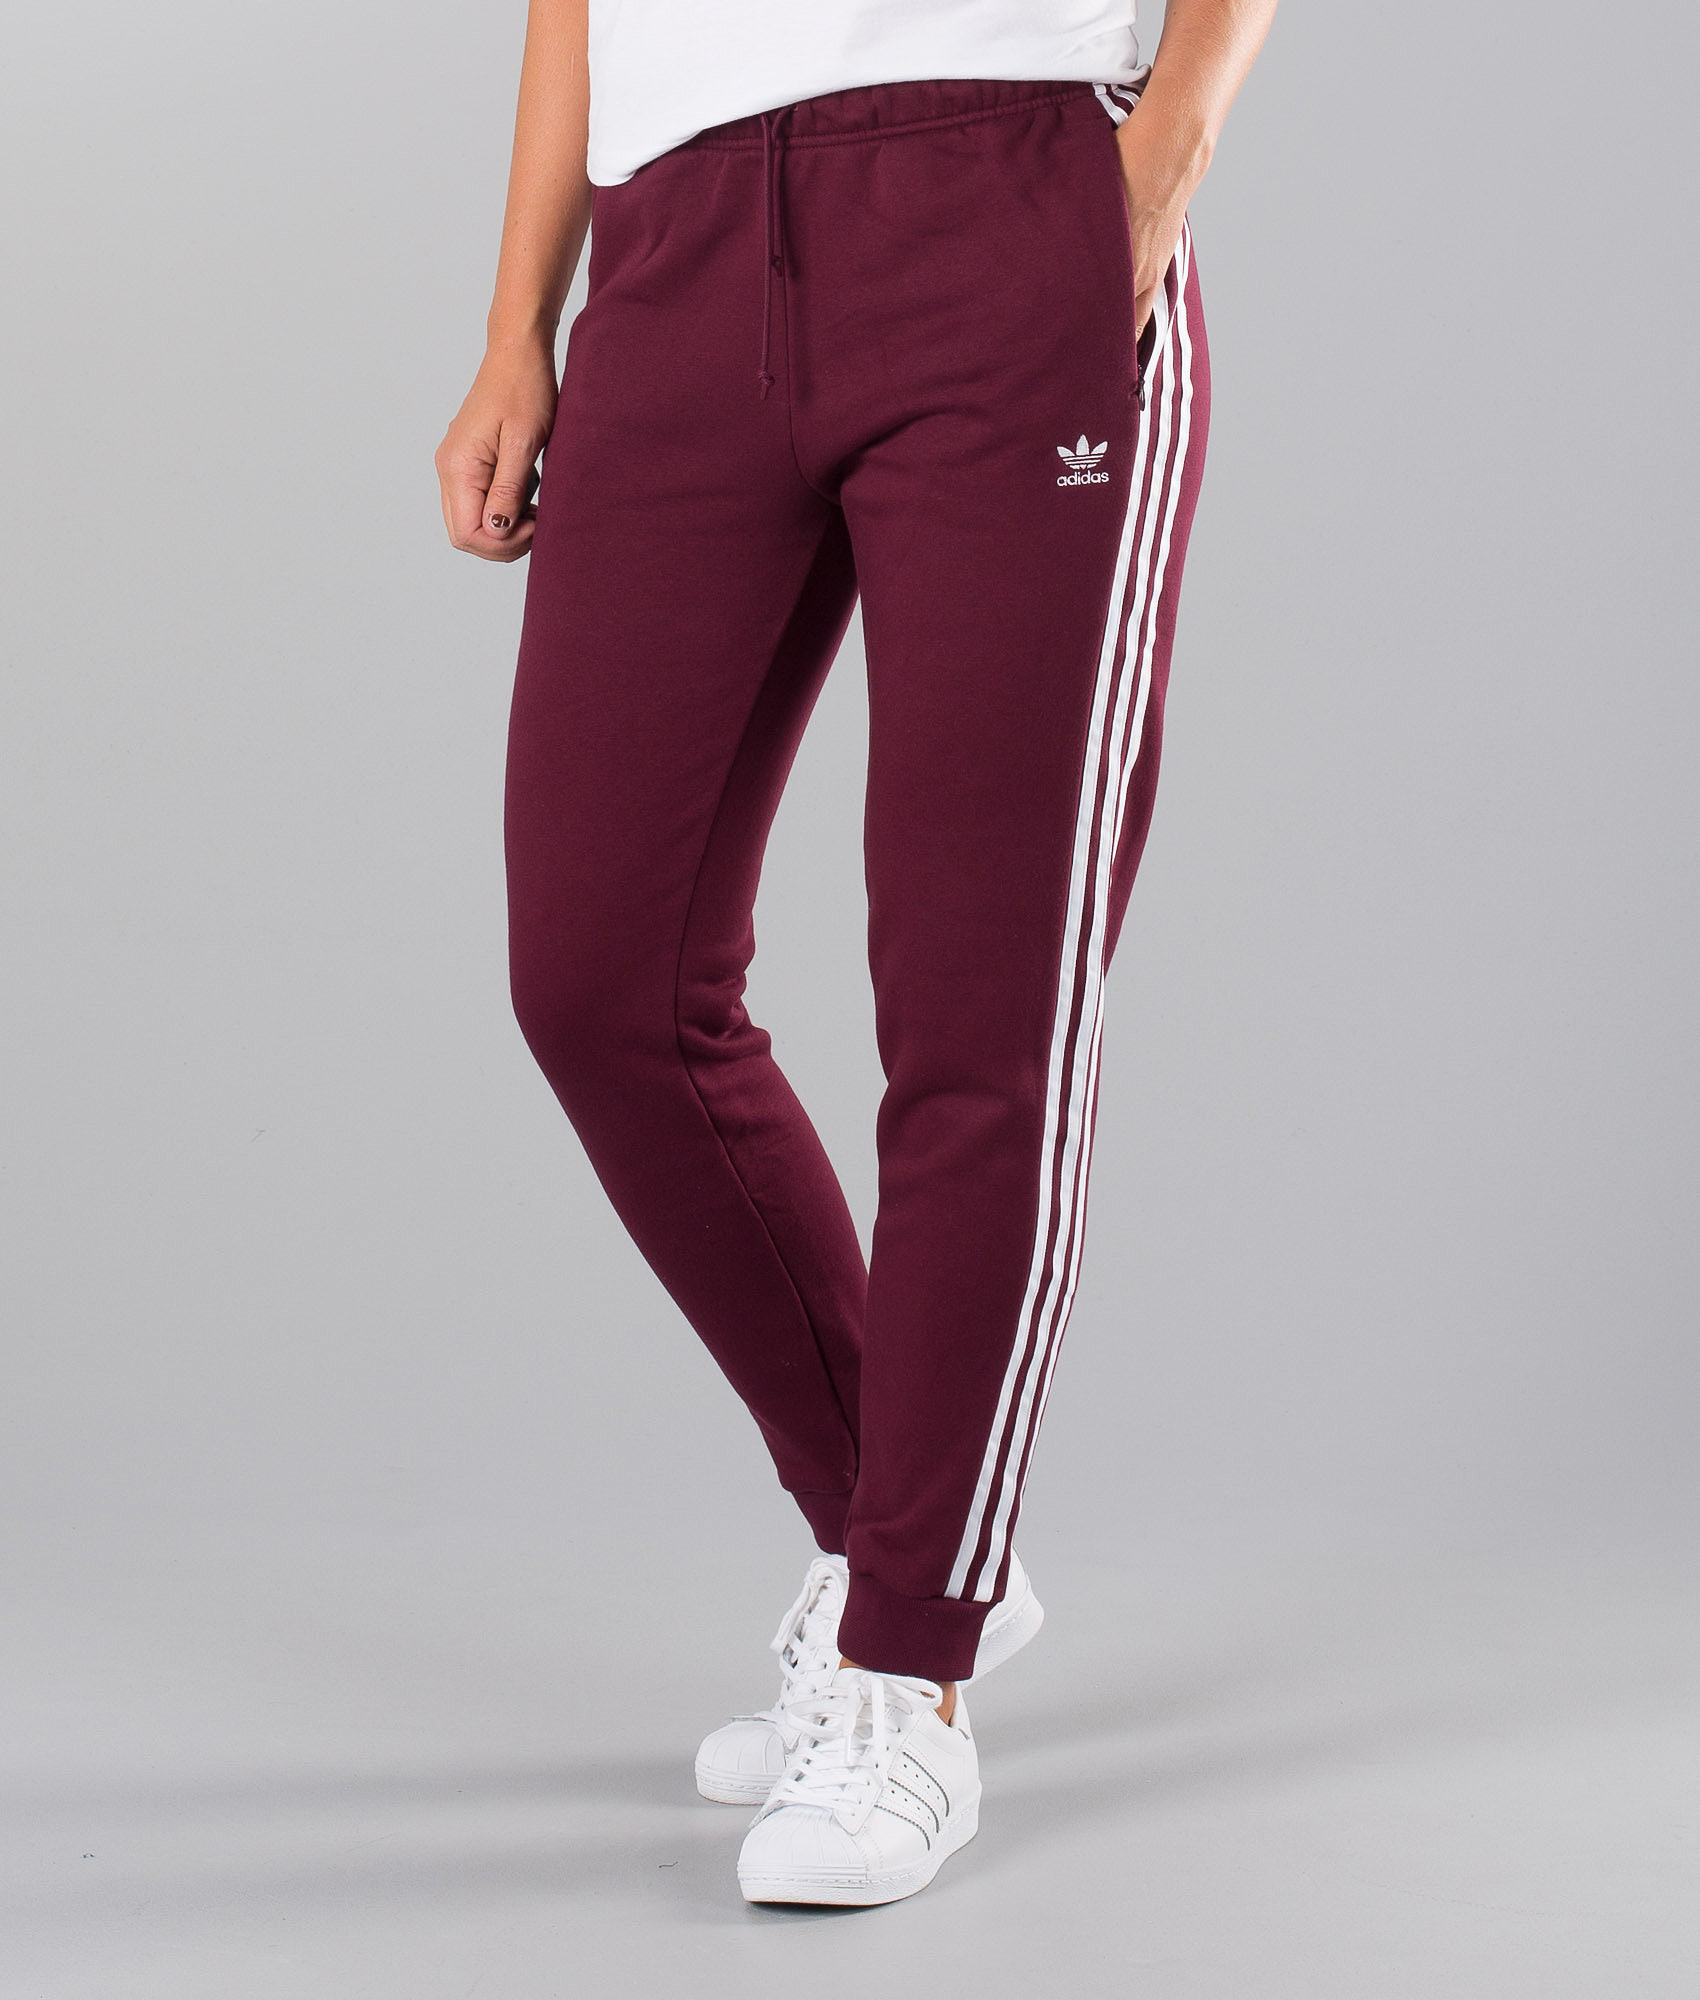 b565487277 Adidas Originals Sst Tp Pants Black - Ridestore.com